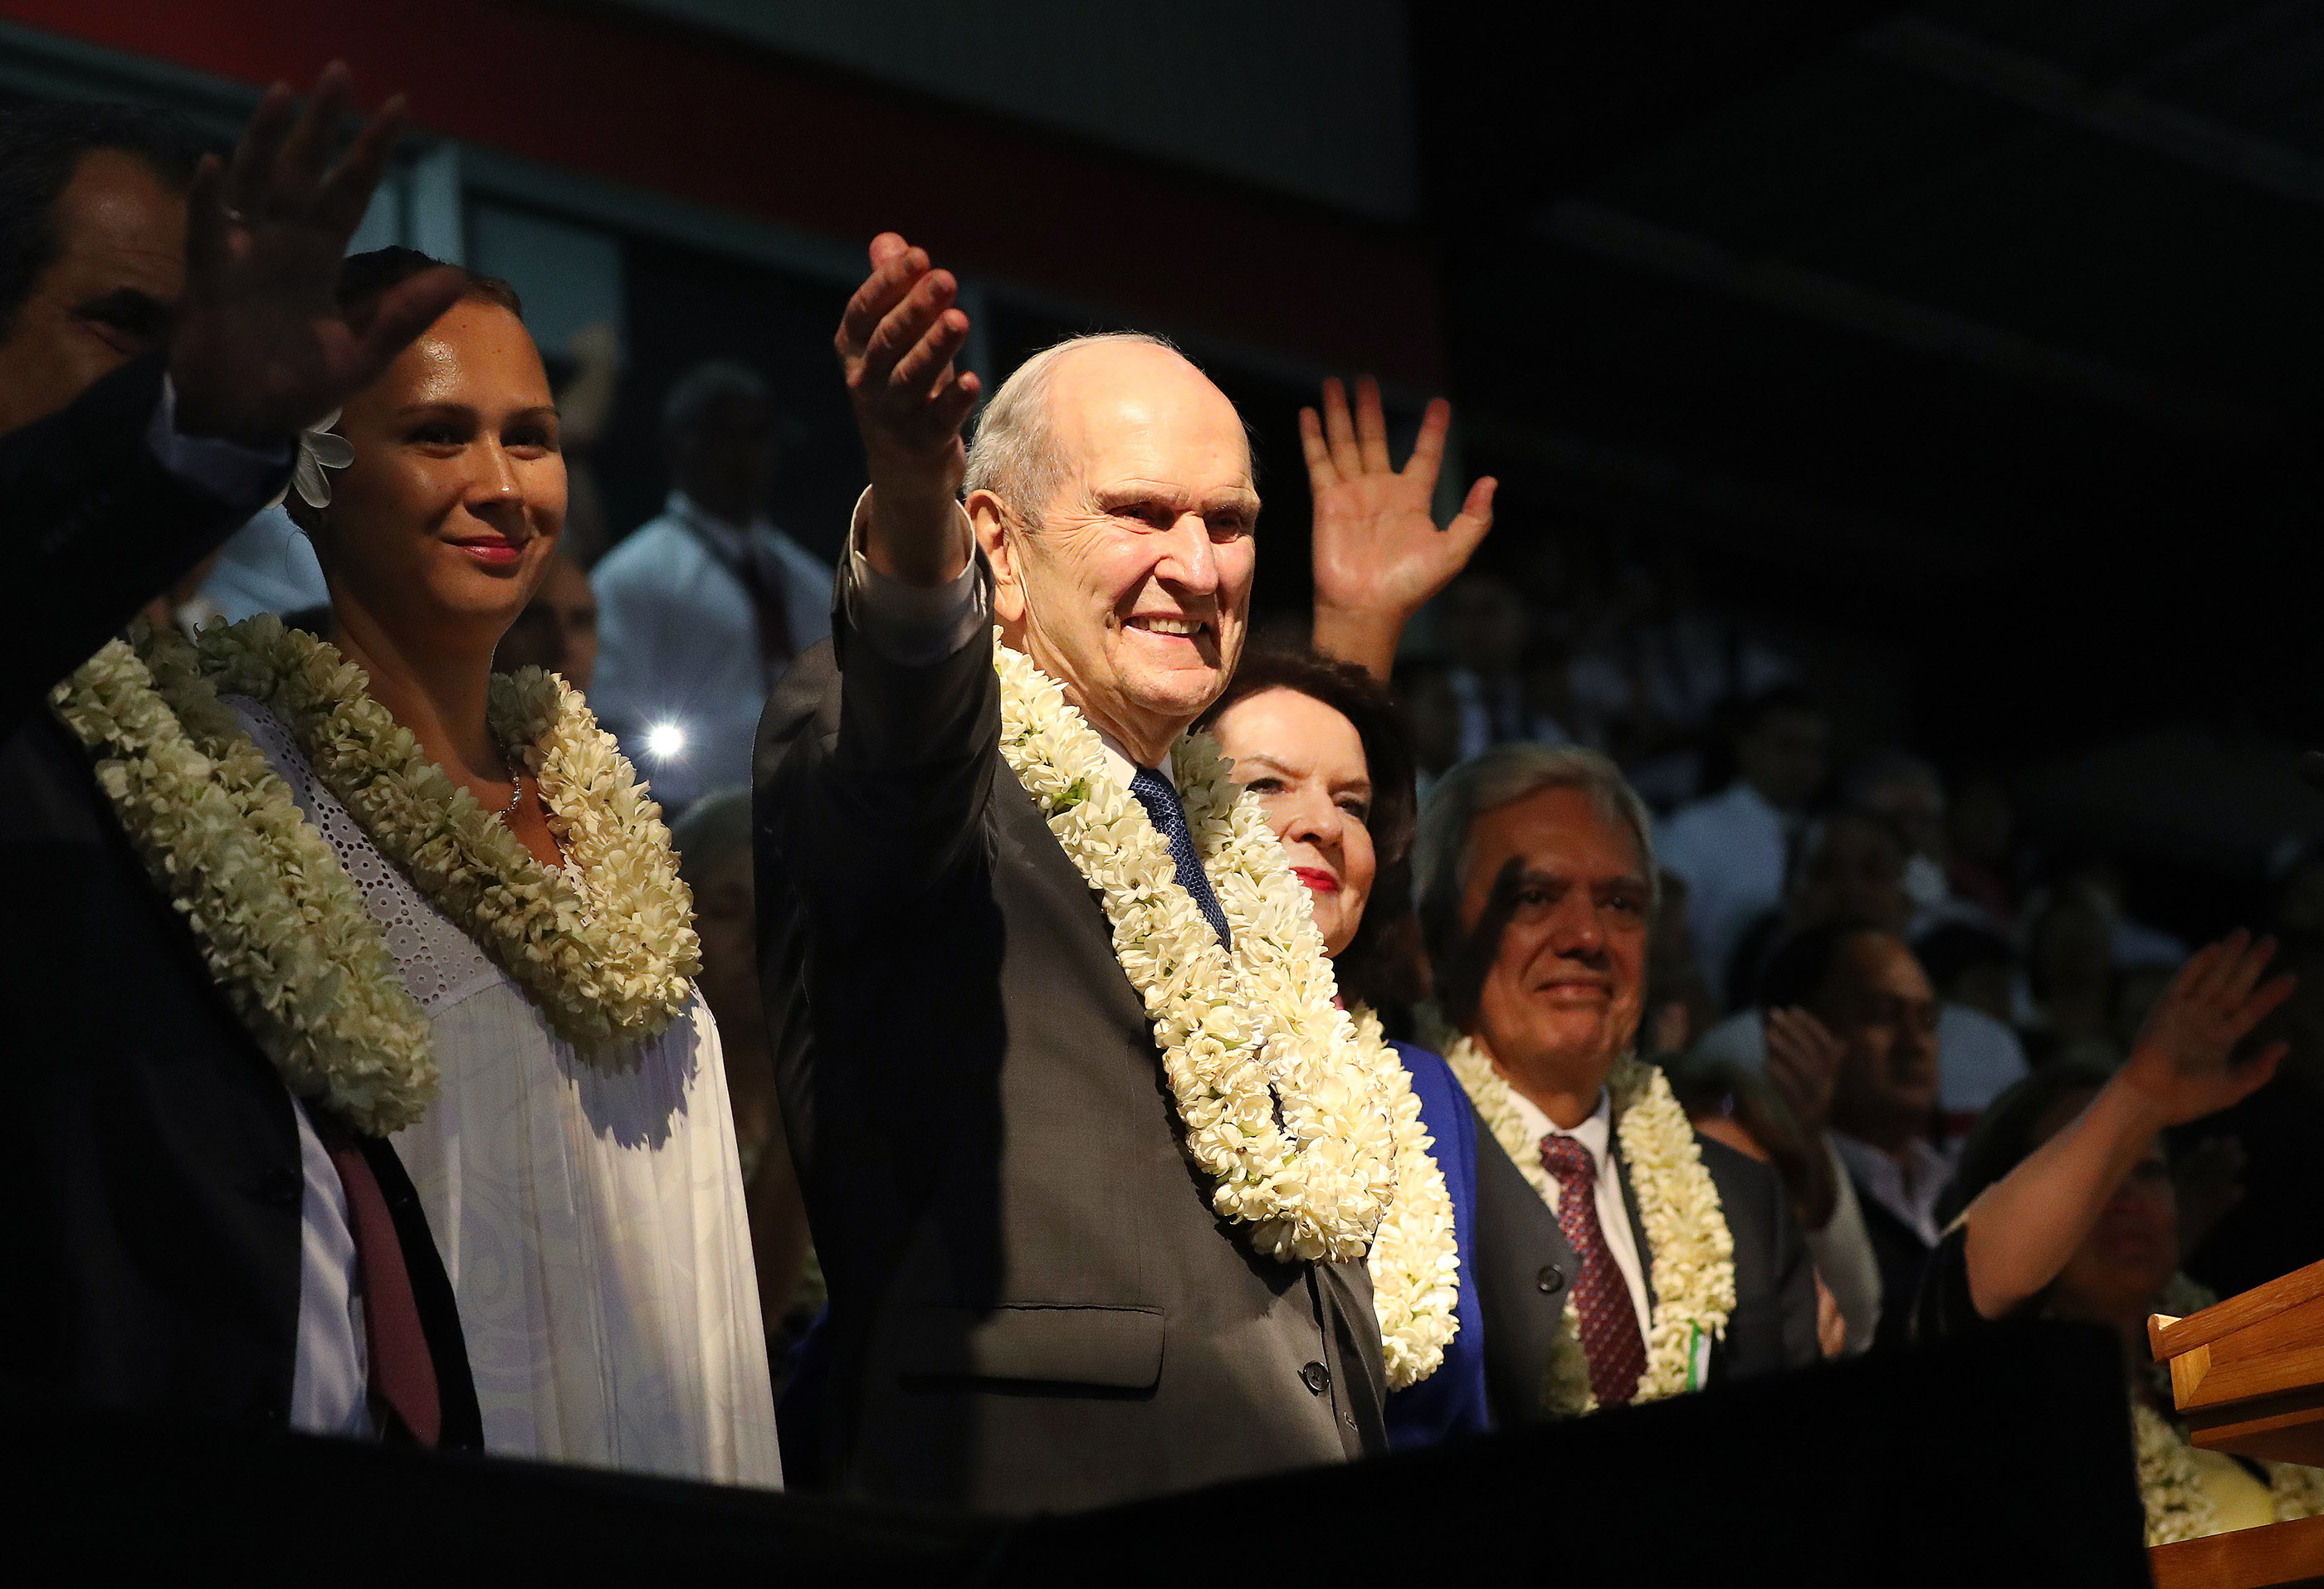 President Russell M. Nelson of The Church of Jesus Christ of Latter-day Saints and his wife, Sister Wendy Nelson, wave to attendees after a devotional in Papeete, Tahiti, on May 24, 2019.